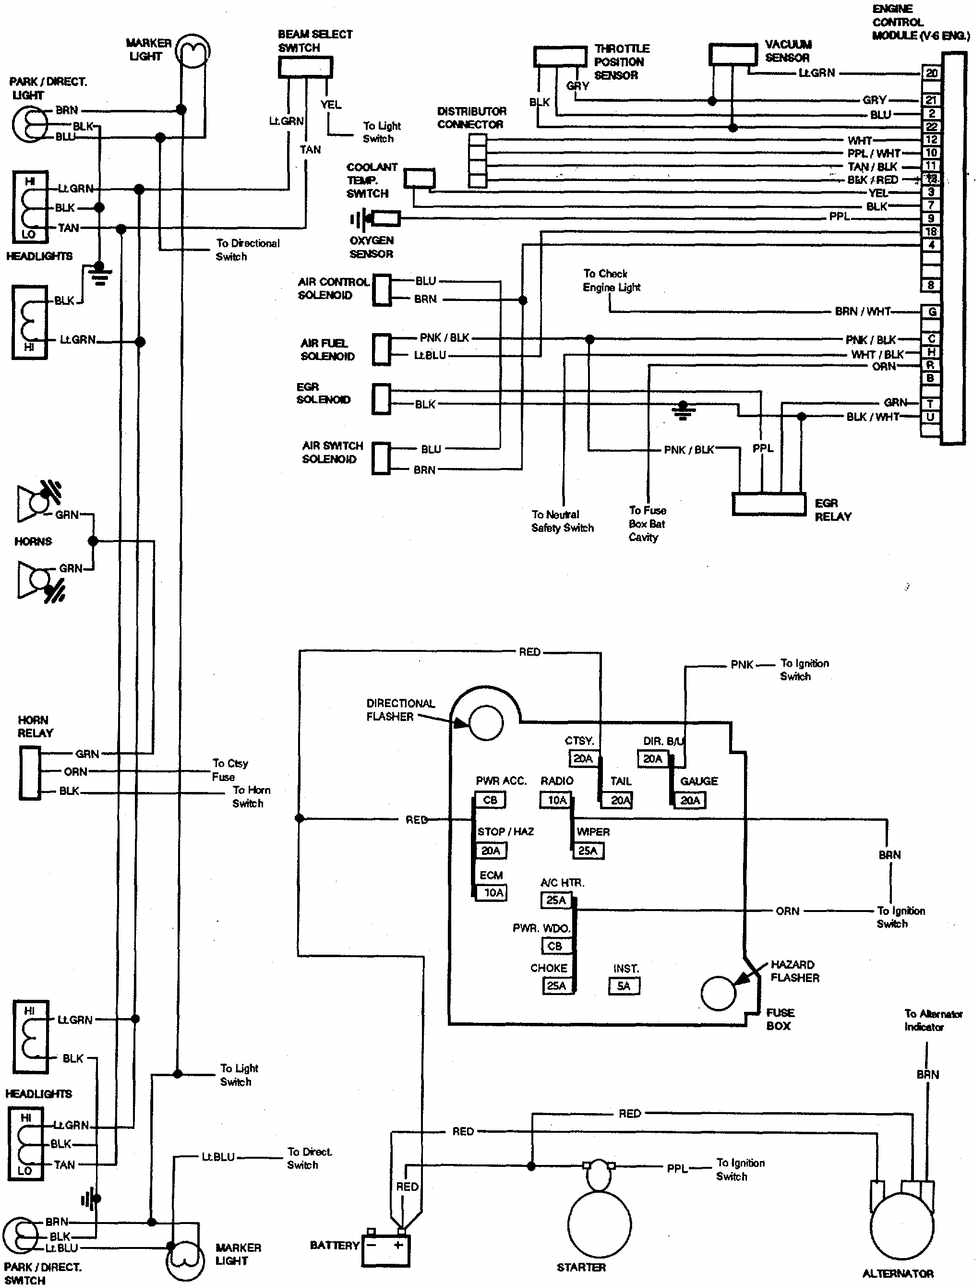 1992 chevrolet wiring diagram horn trusted wiring diagrams u2022 rh autoglas stadtroda de